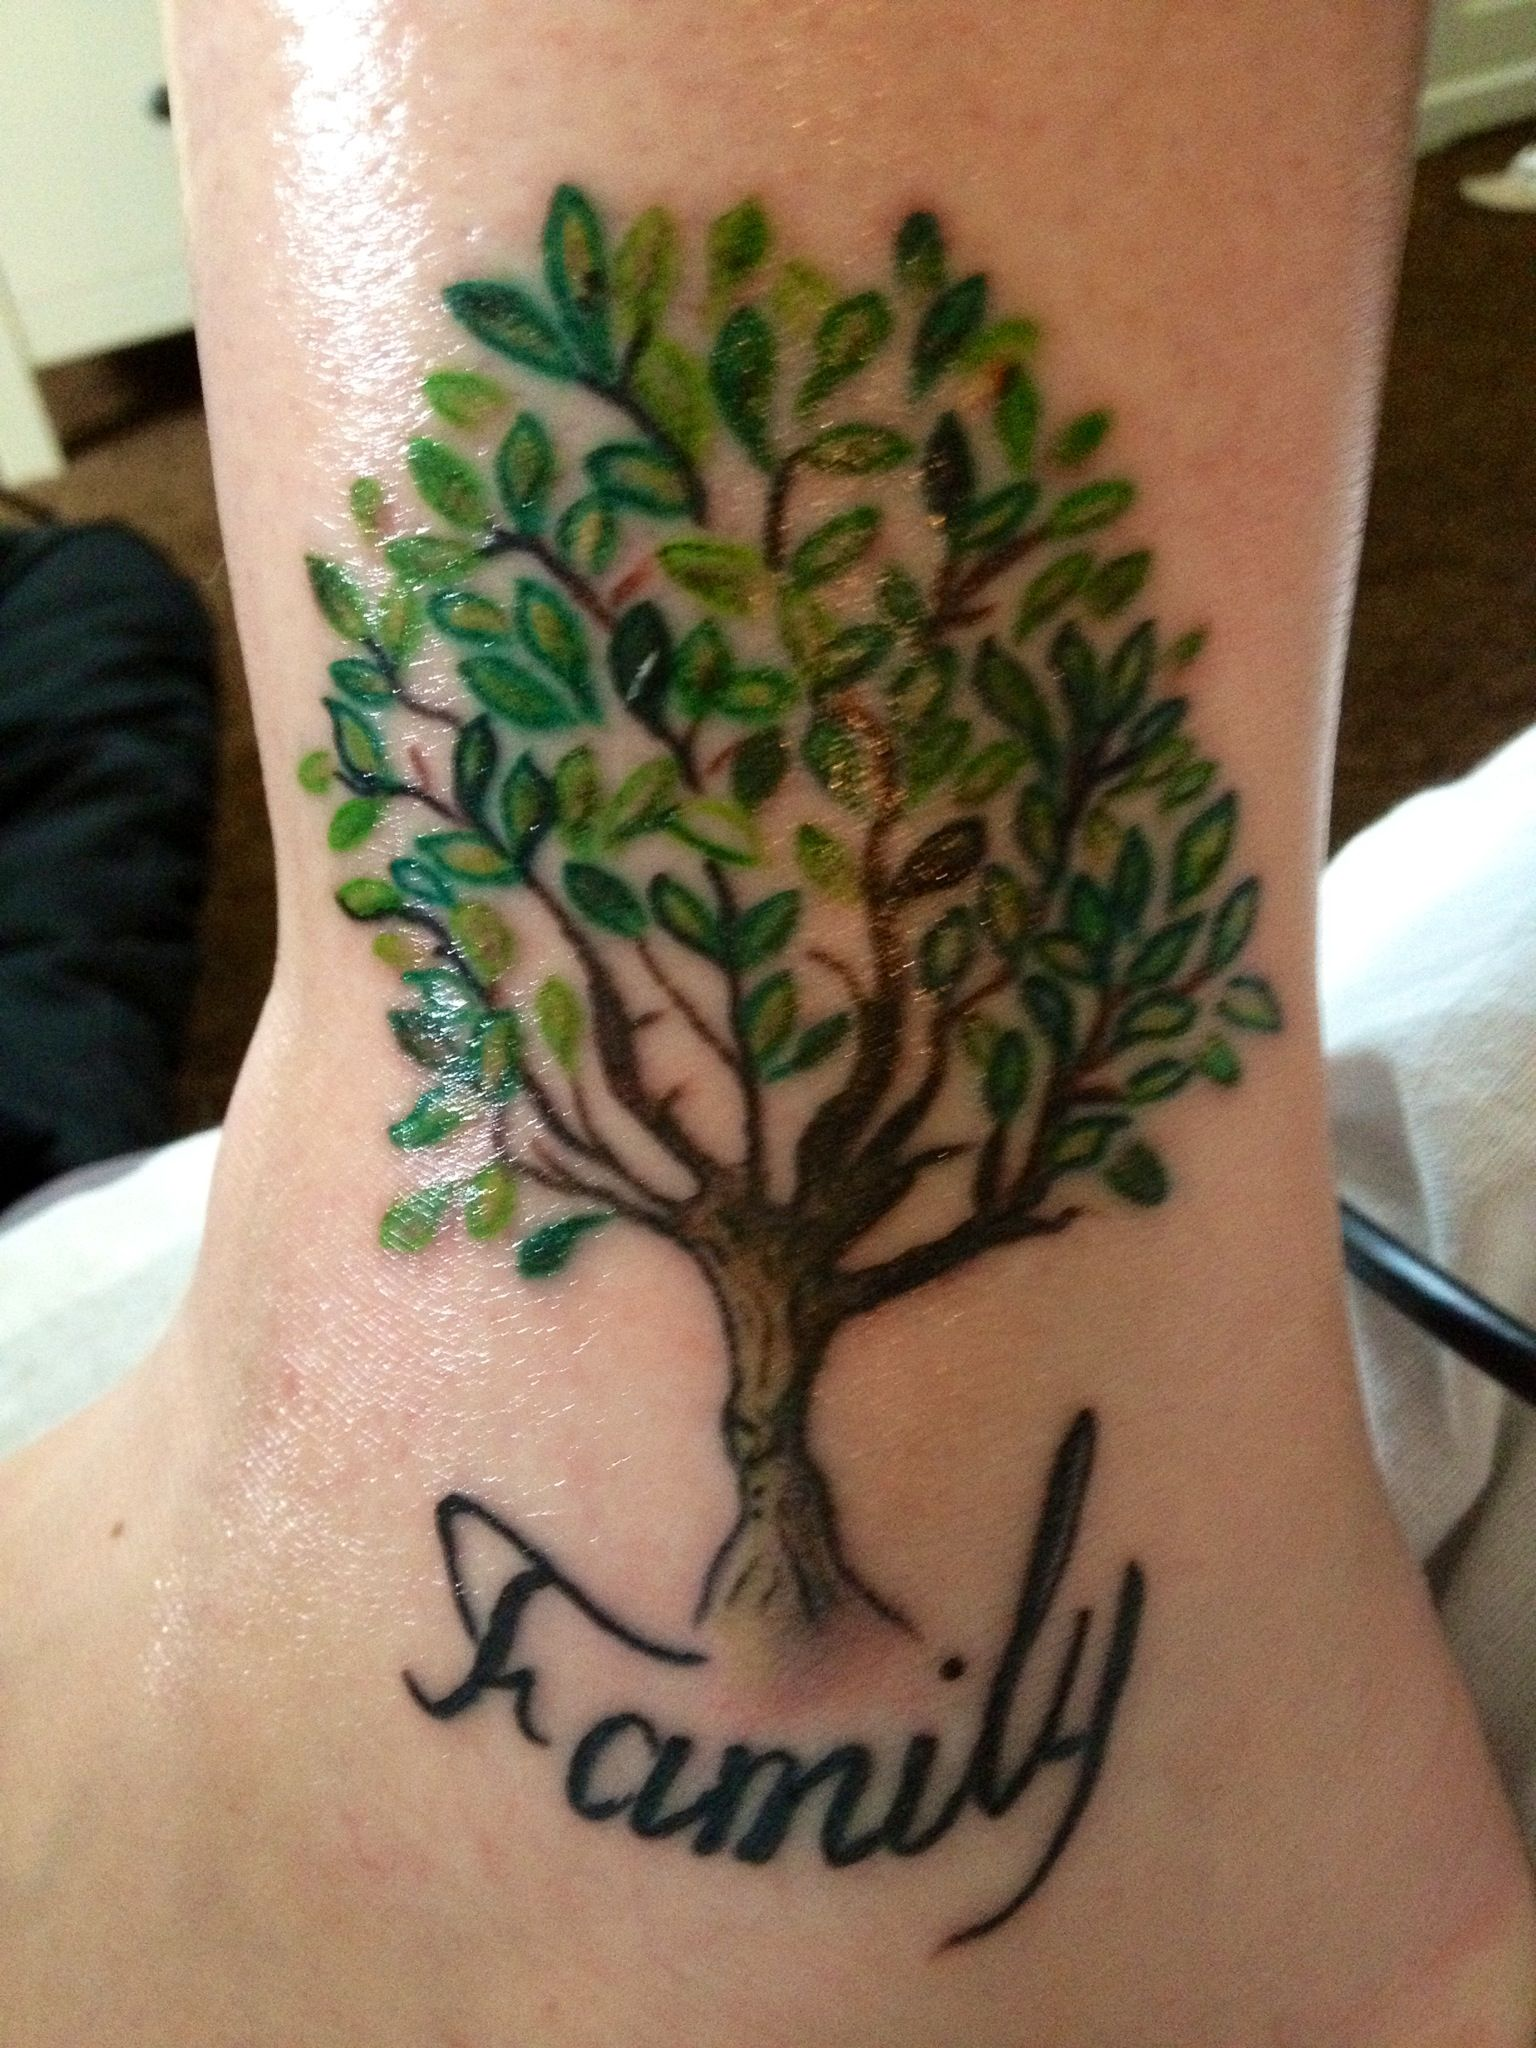 My family tree tattoo. Next tattoo, but with names in the